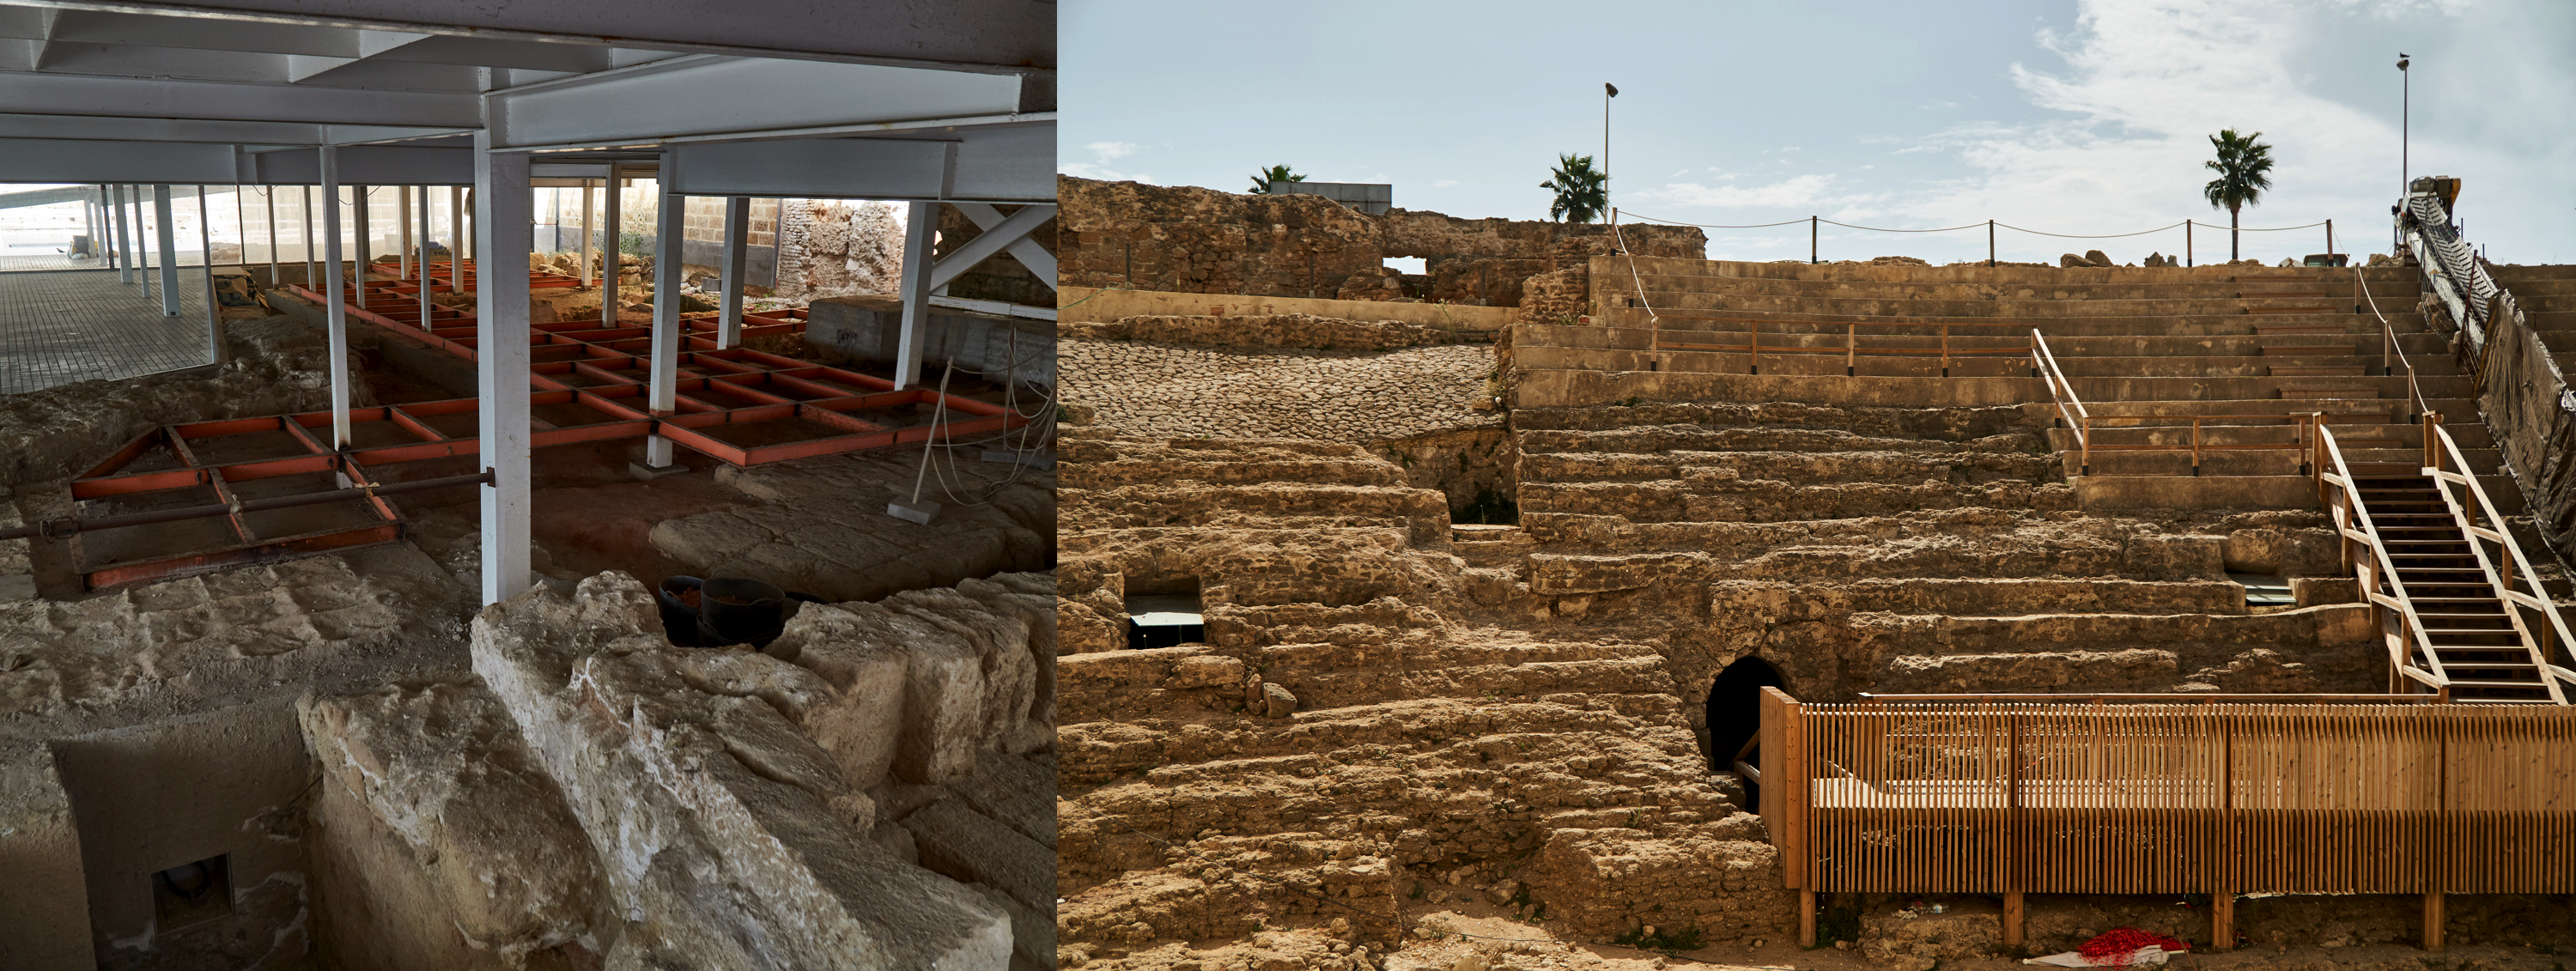 Phoenician buildings and parts of the roman theater